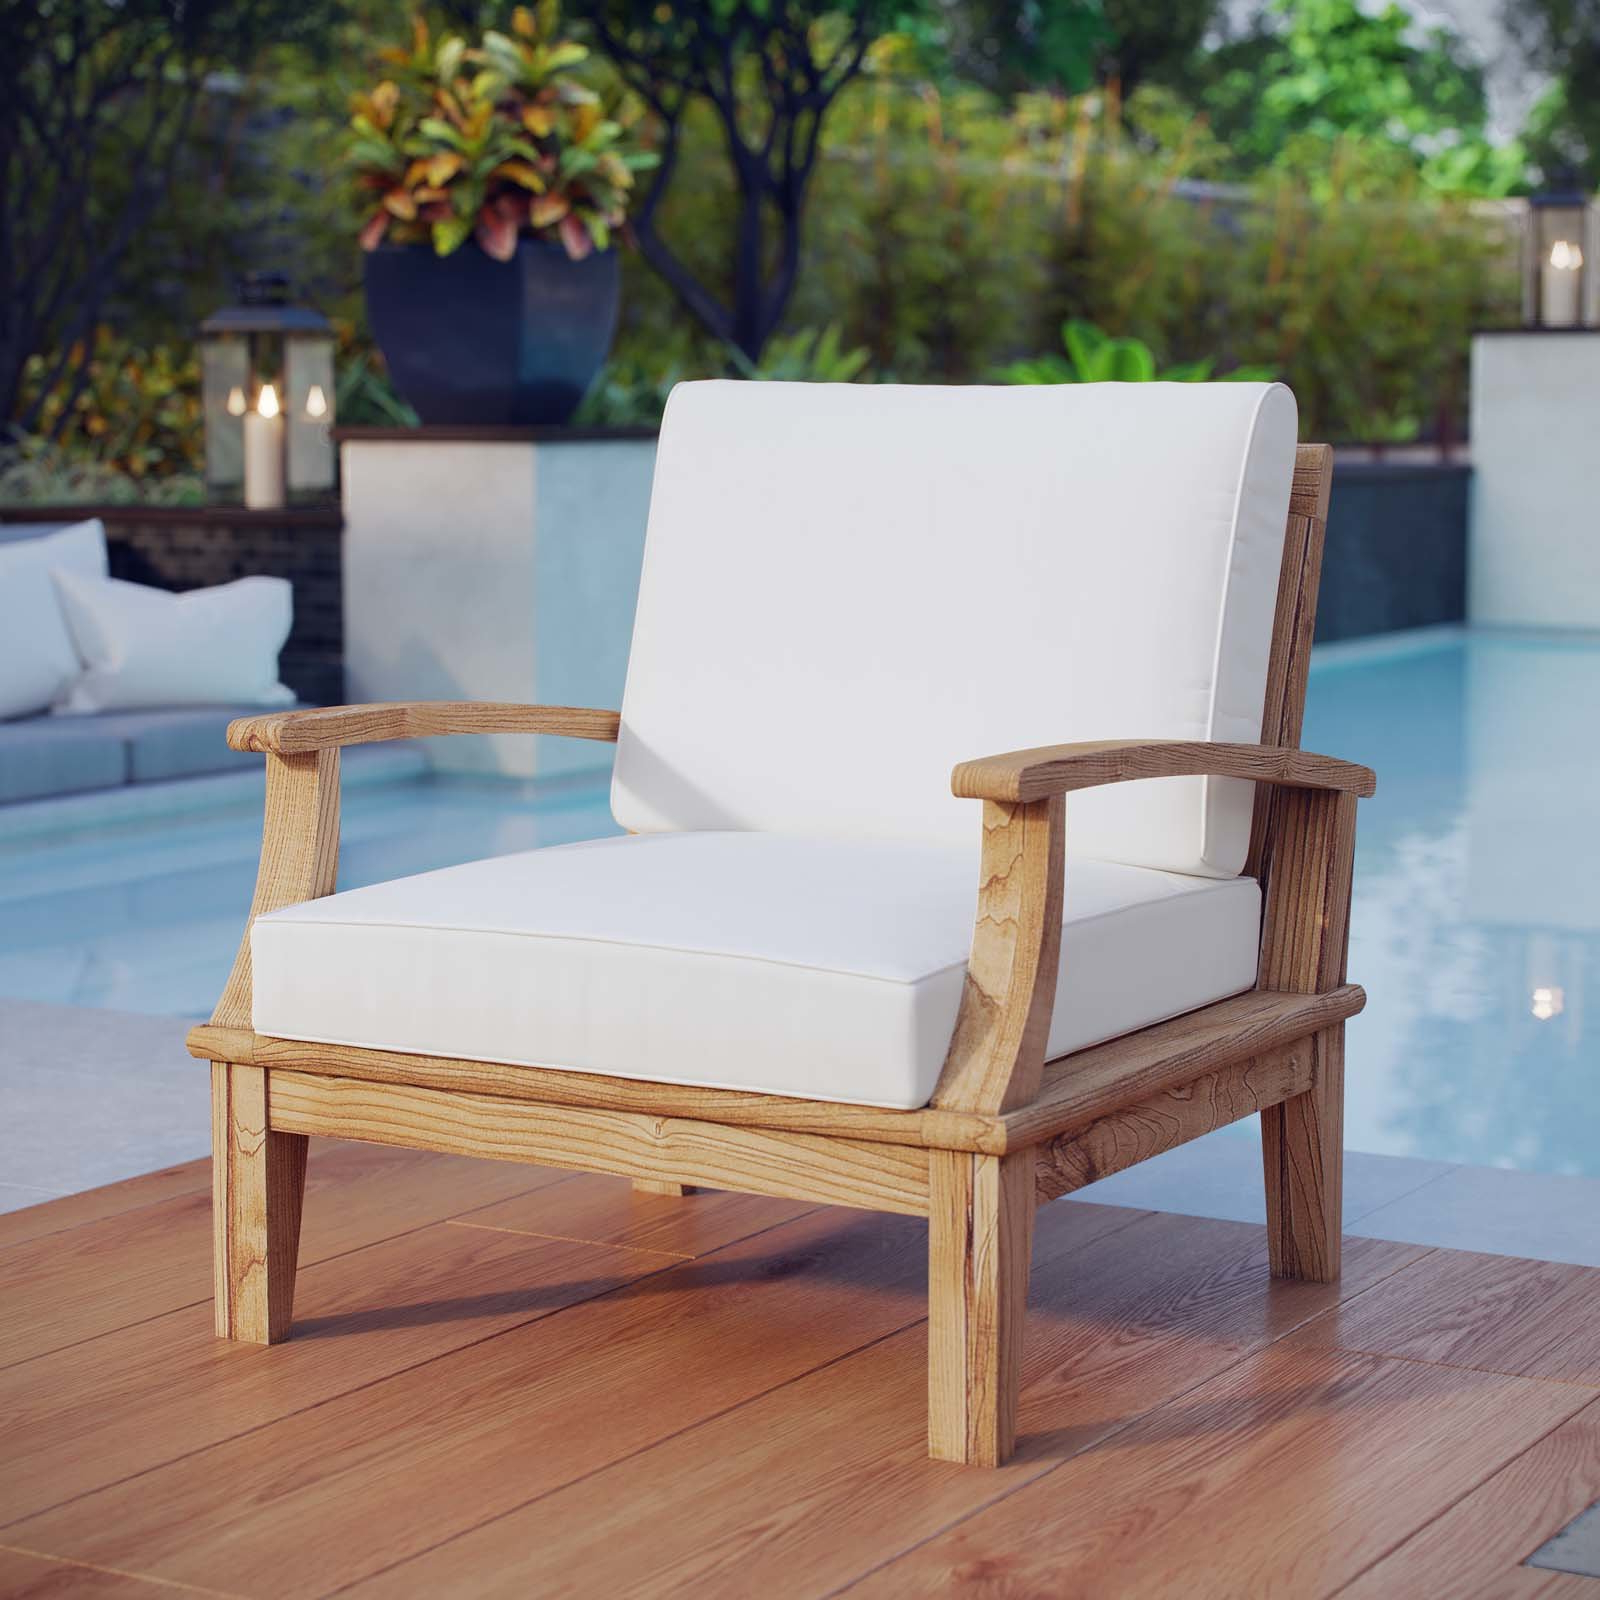 Elaina Teak Patio Chair With Cushions With Best And Newest Summerton Teak Patio Sofas With Cushions (Gallery 10 of 20)